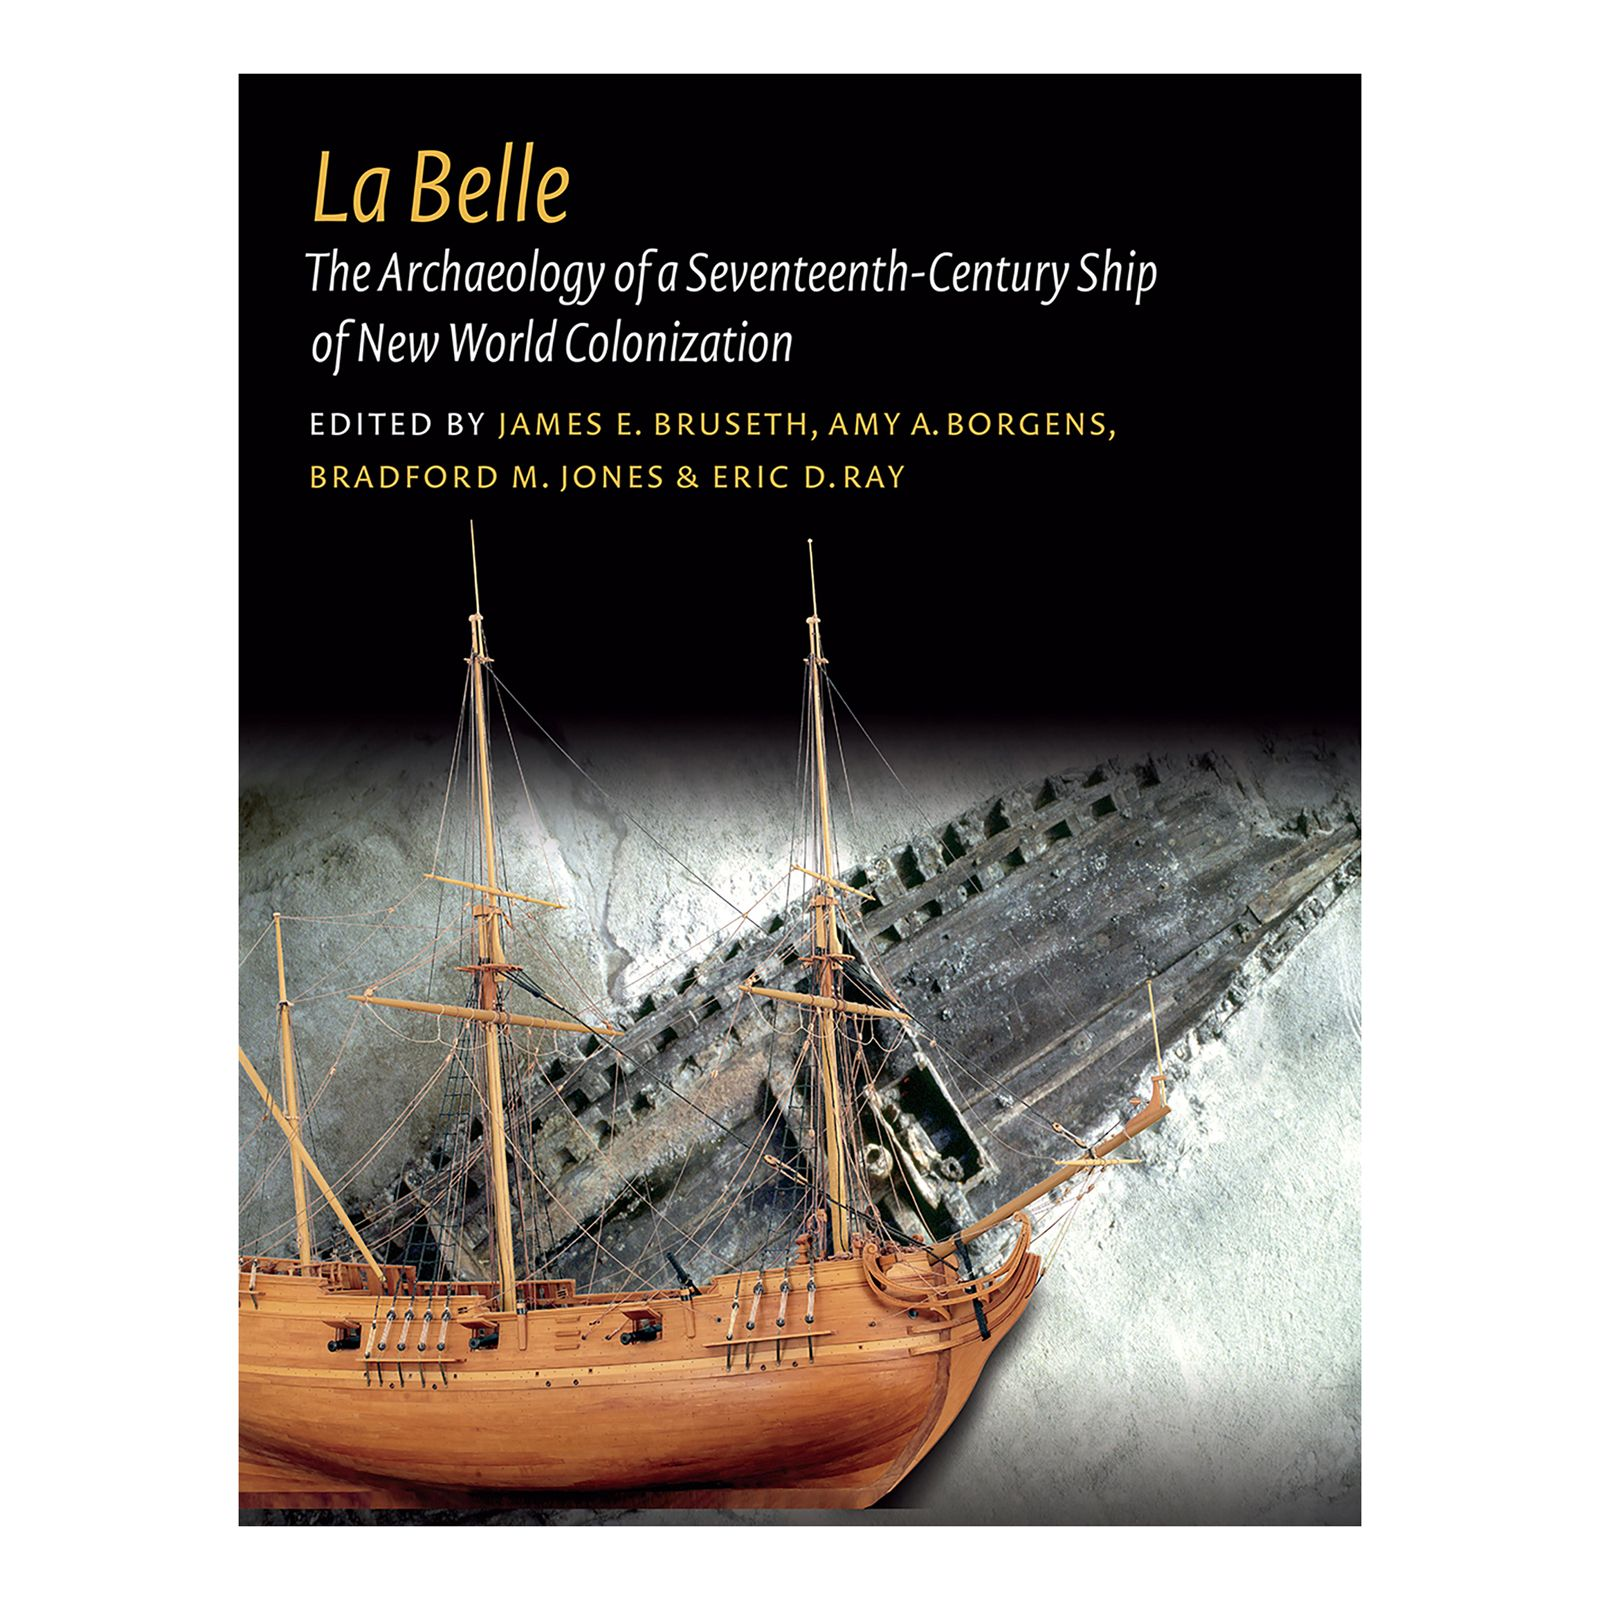 La Belle: The Archaeology of a 17th-Century Ship of New World Colonization